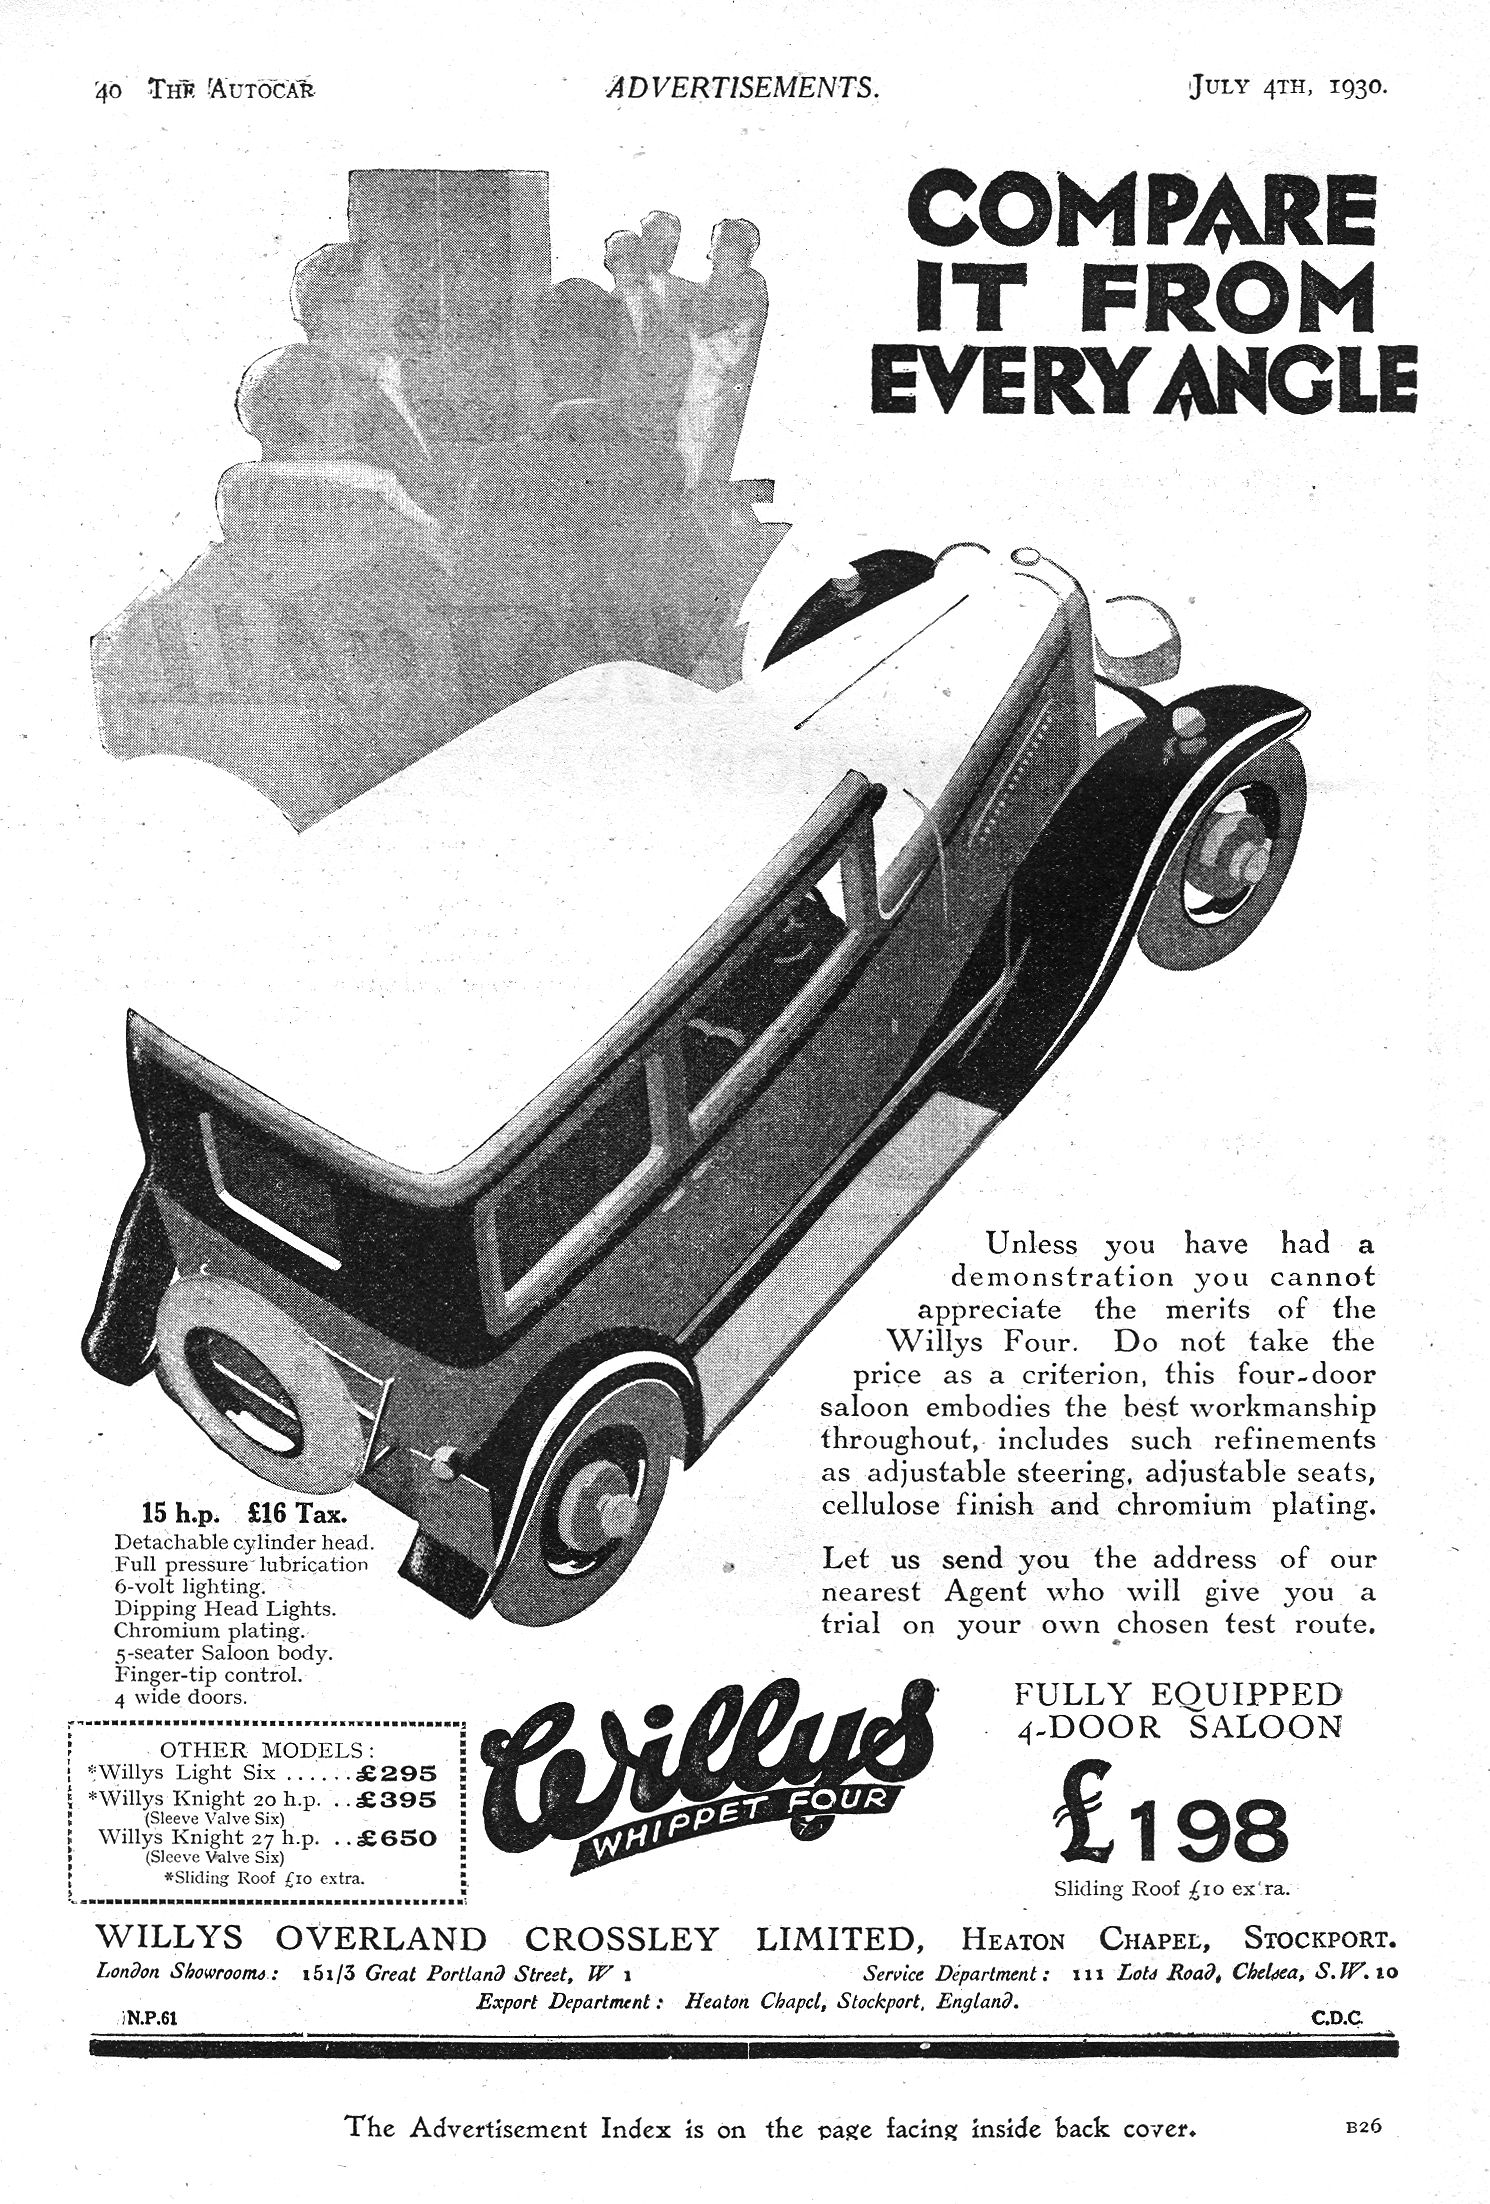 Willys Whippet Four Saloon Motor Car Autocar Advert 1930   Vintage ...